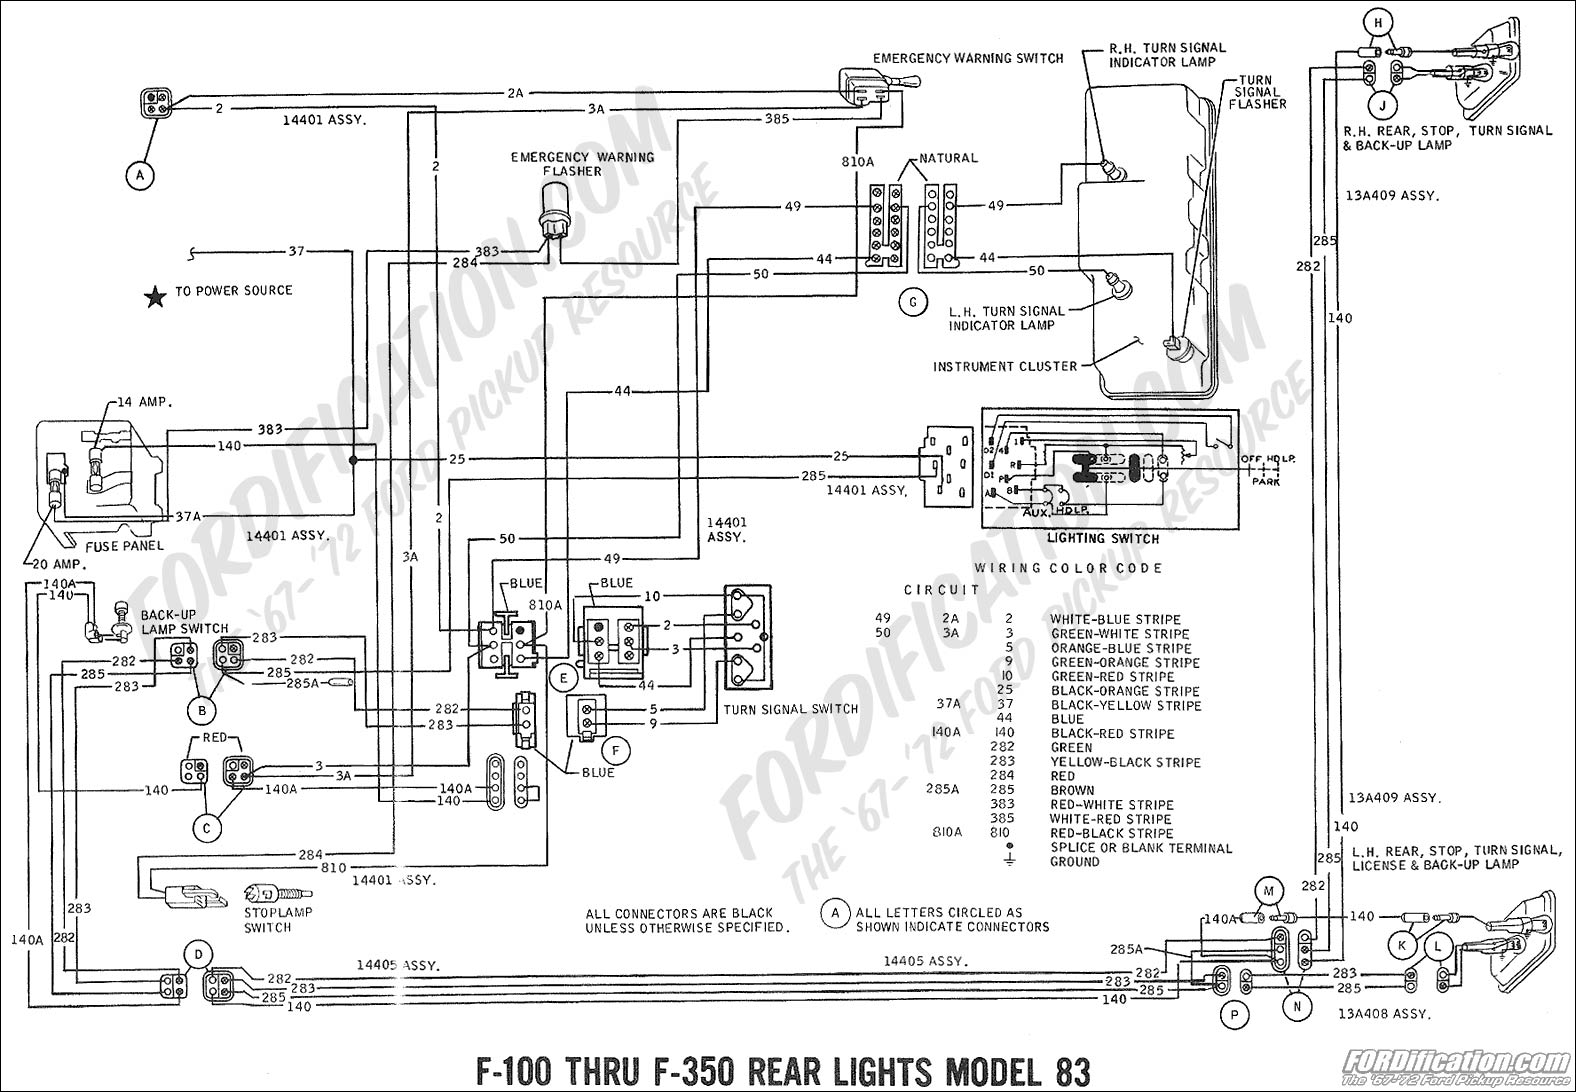 1971 Ford F 250 Wiring Diagram For 1988 F700 Diagrams Click69 Simple 1959 Edsel